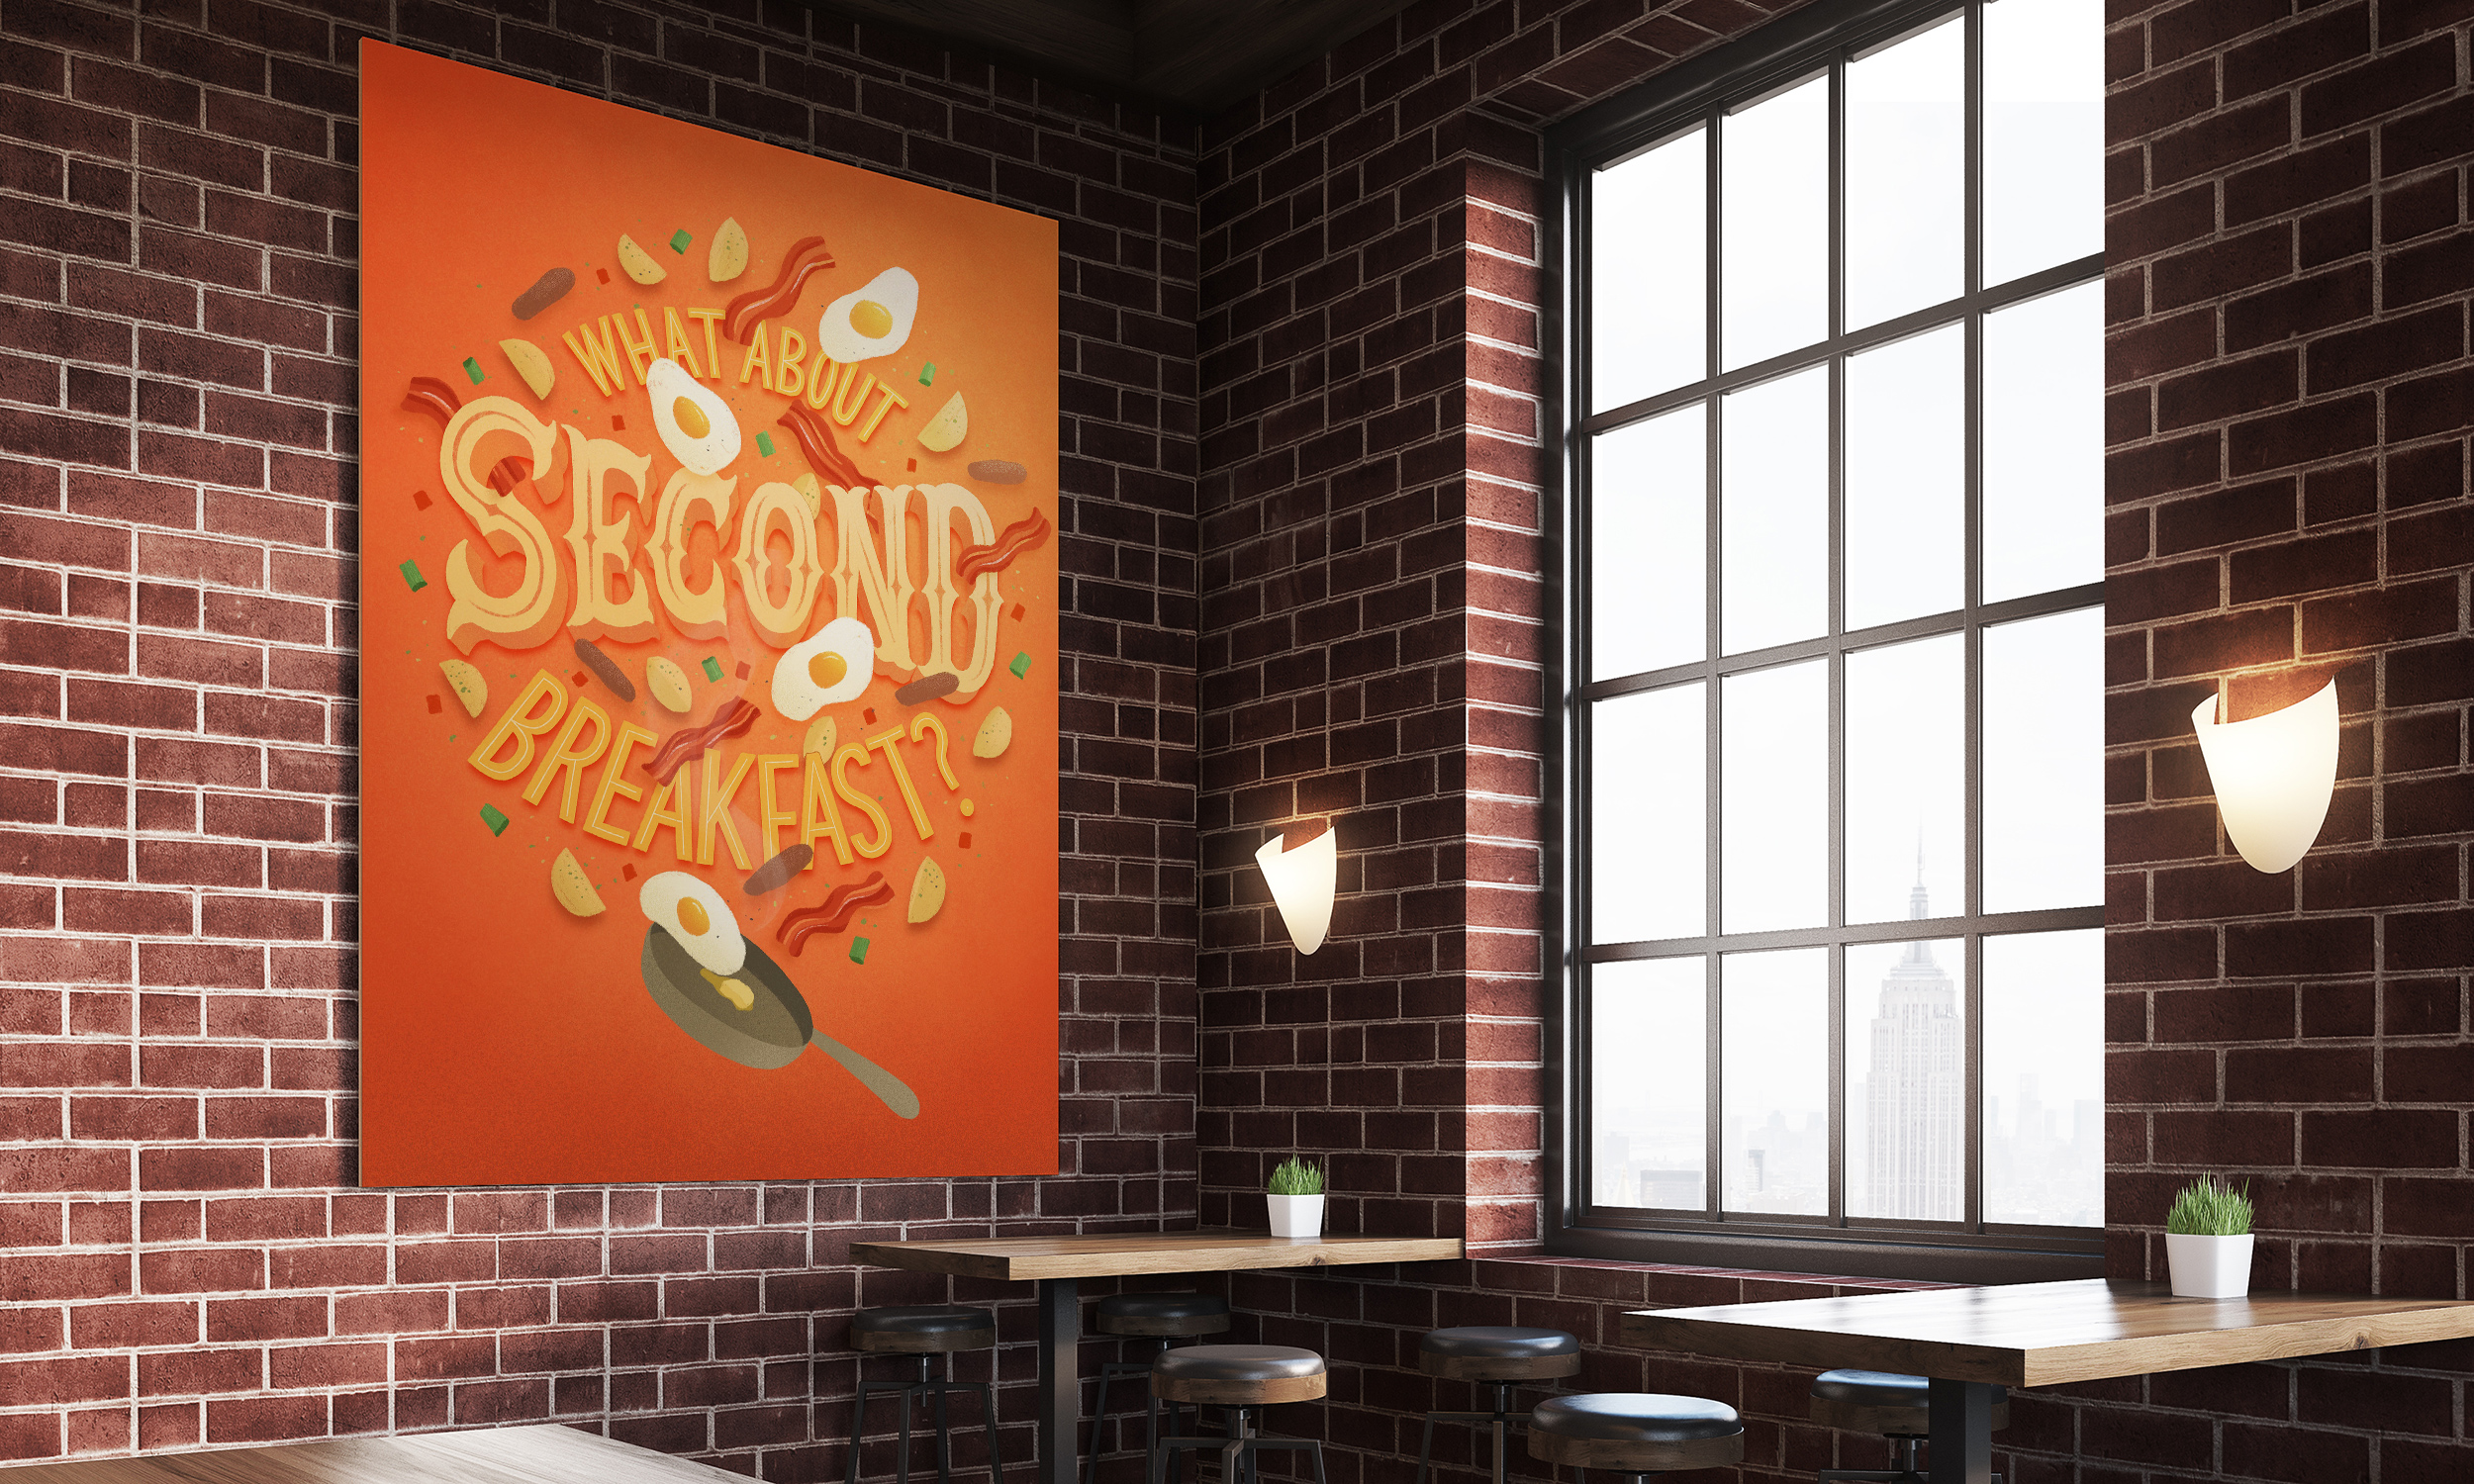 what-about-second-breakfast-poster-mockup.jpg